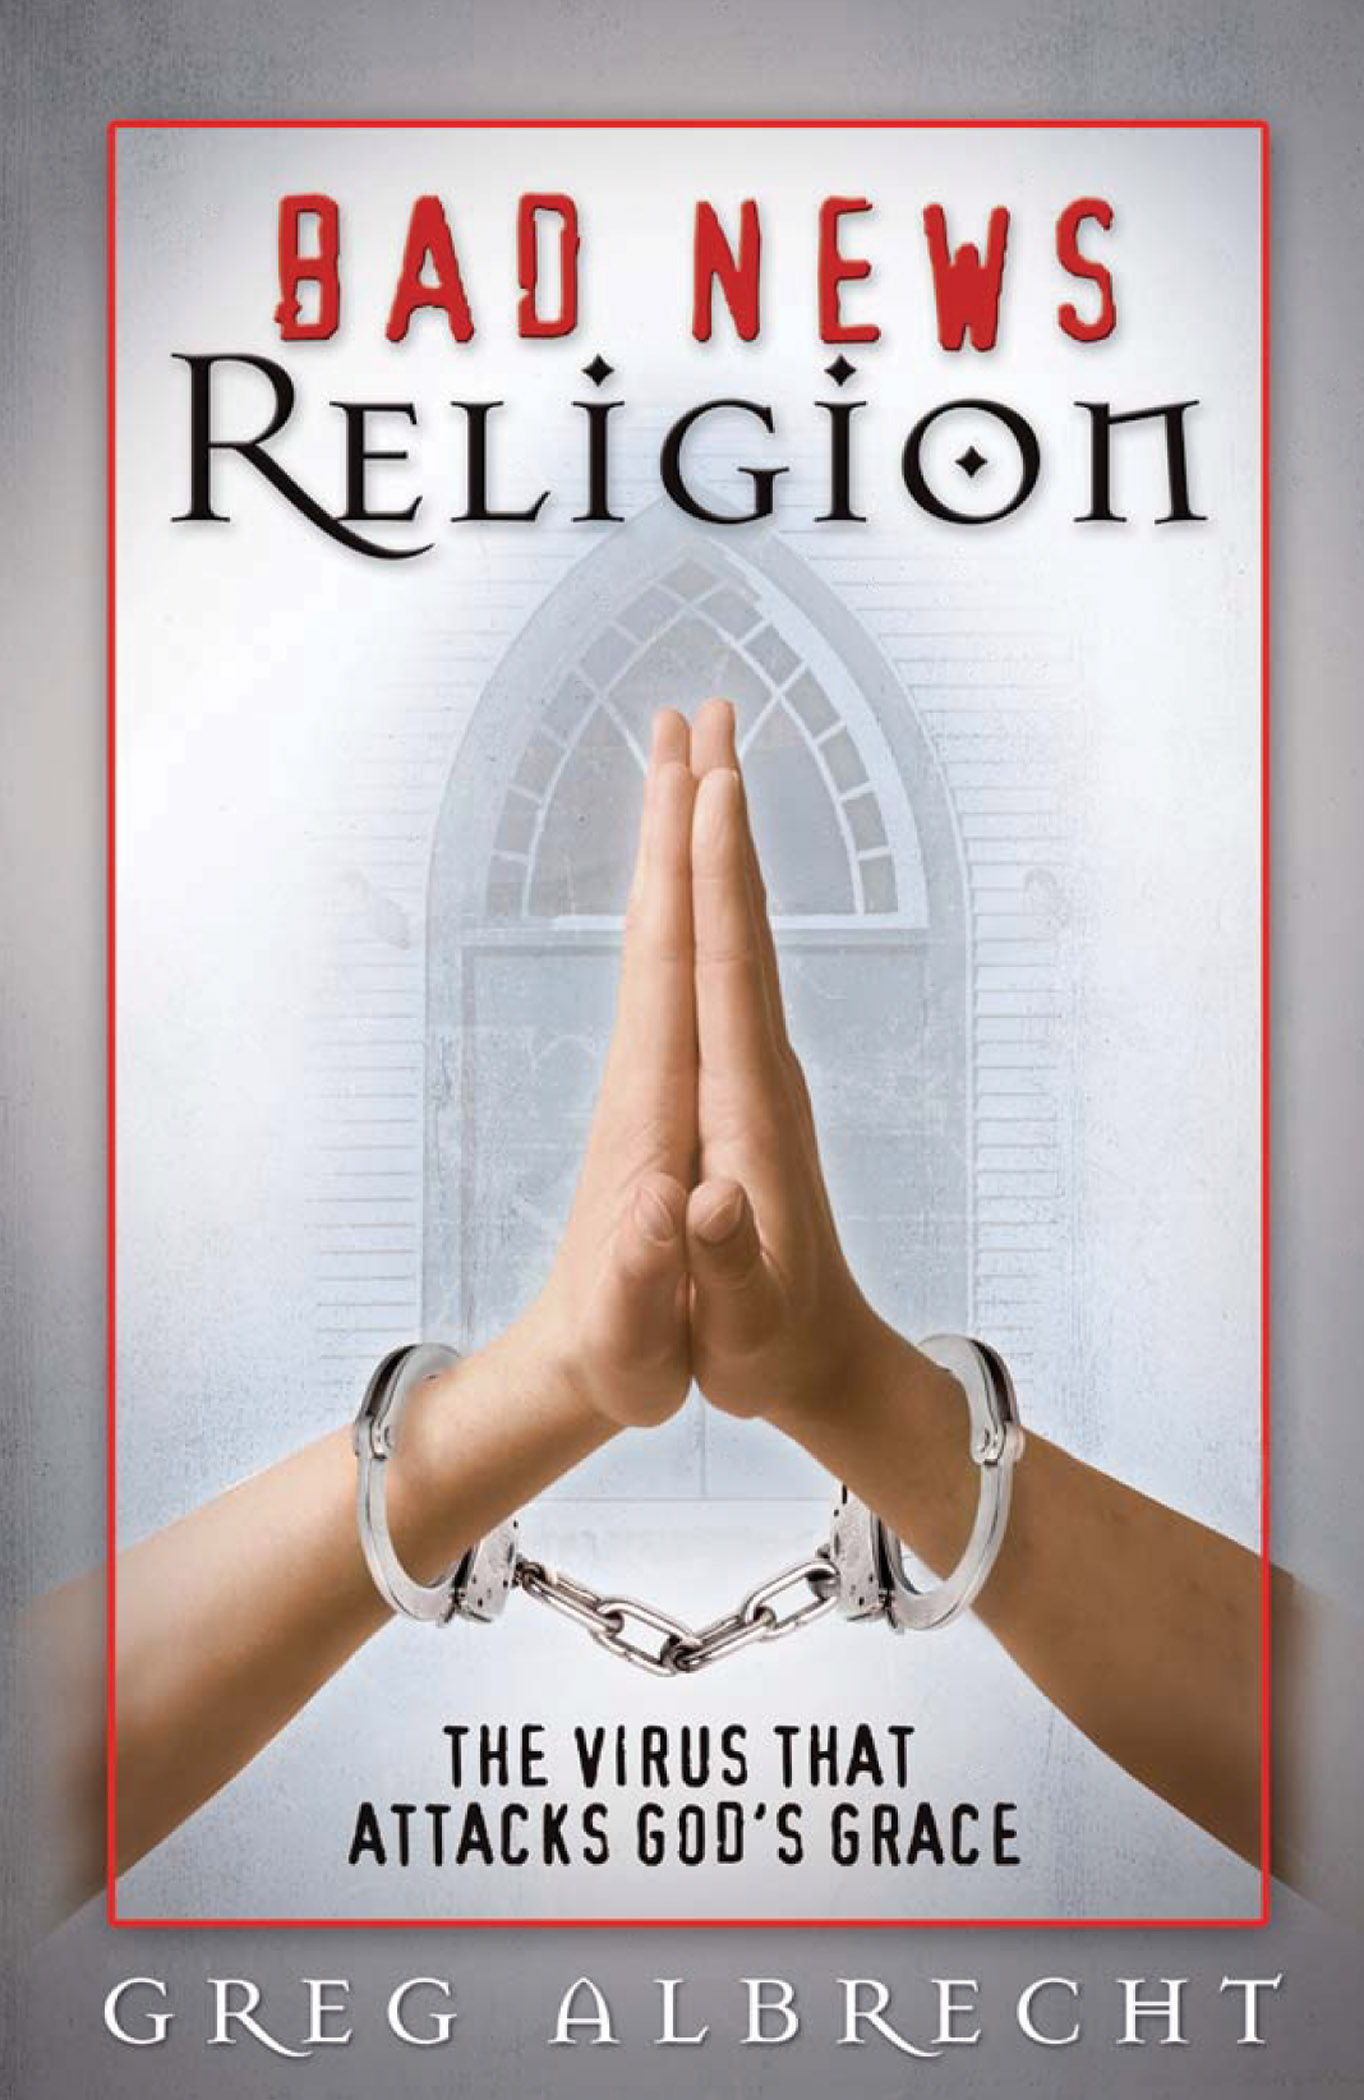 Legalism Whats Wrong With Being Religious - Religion news